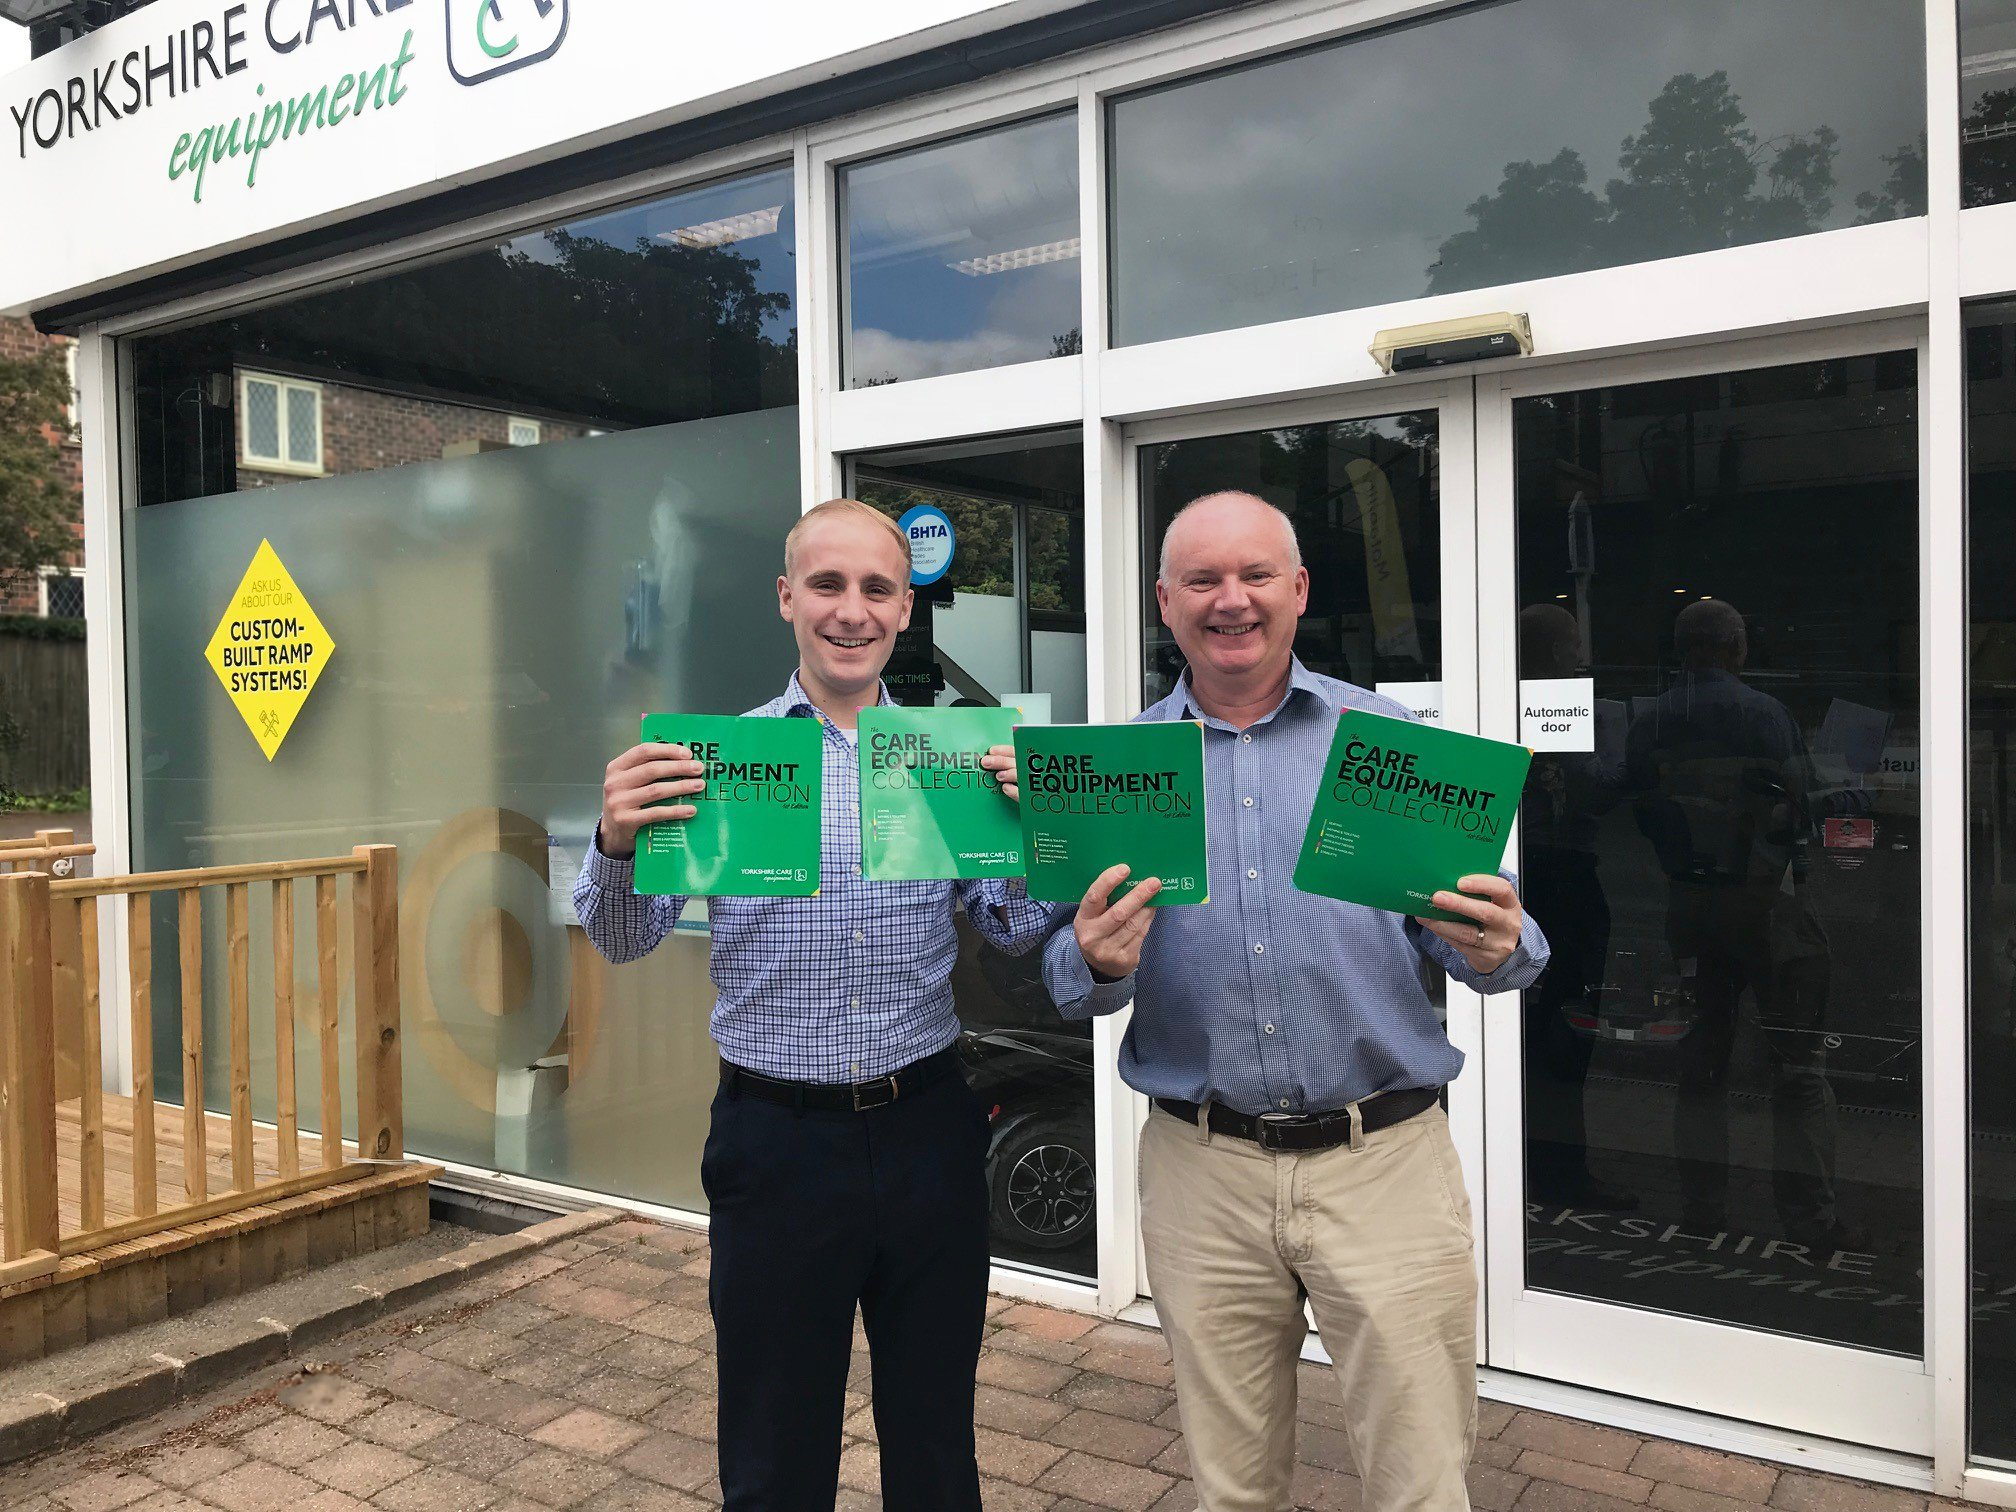 David Jordan and Gary Hornsby-Shawe holding the Care Equipment Collection brochure.